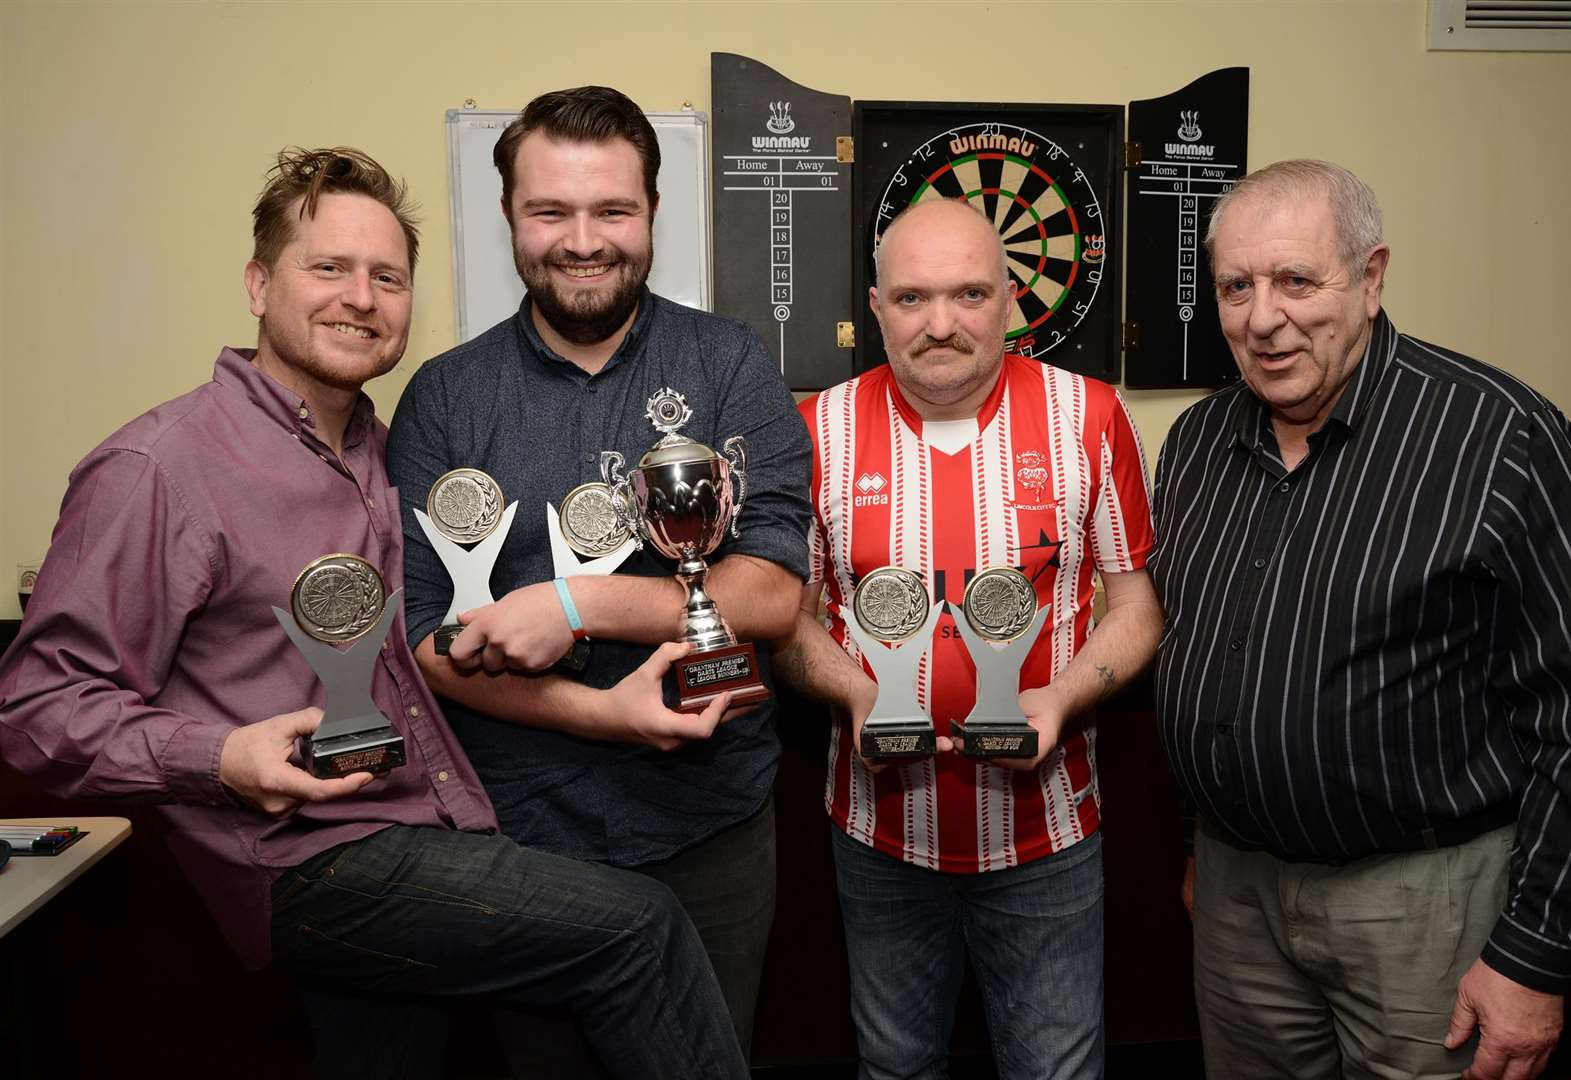 Grantham Premier Darts League holds awards night